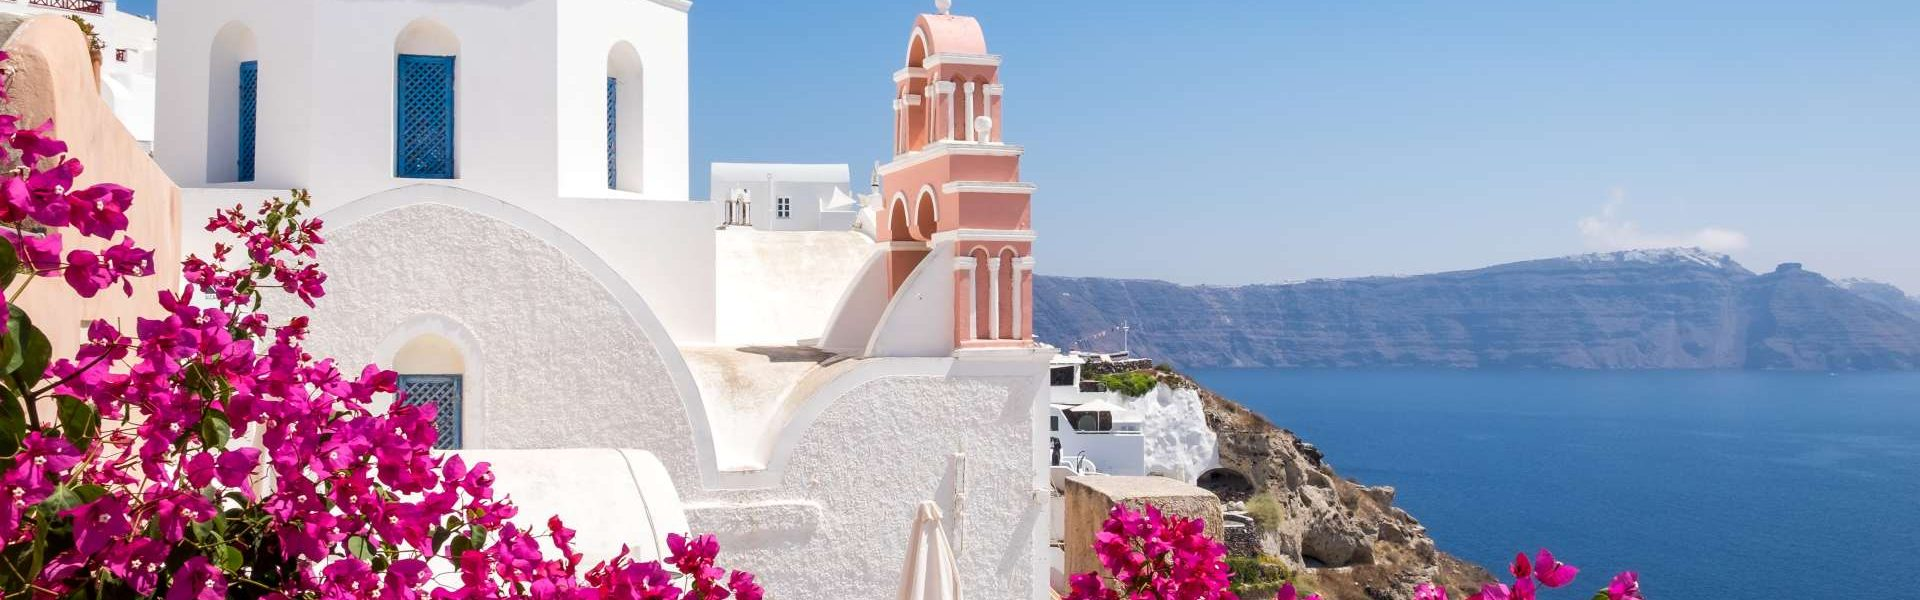 traditional cycladic houses with flowers in foreg